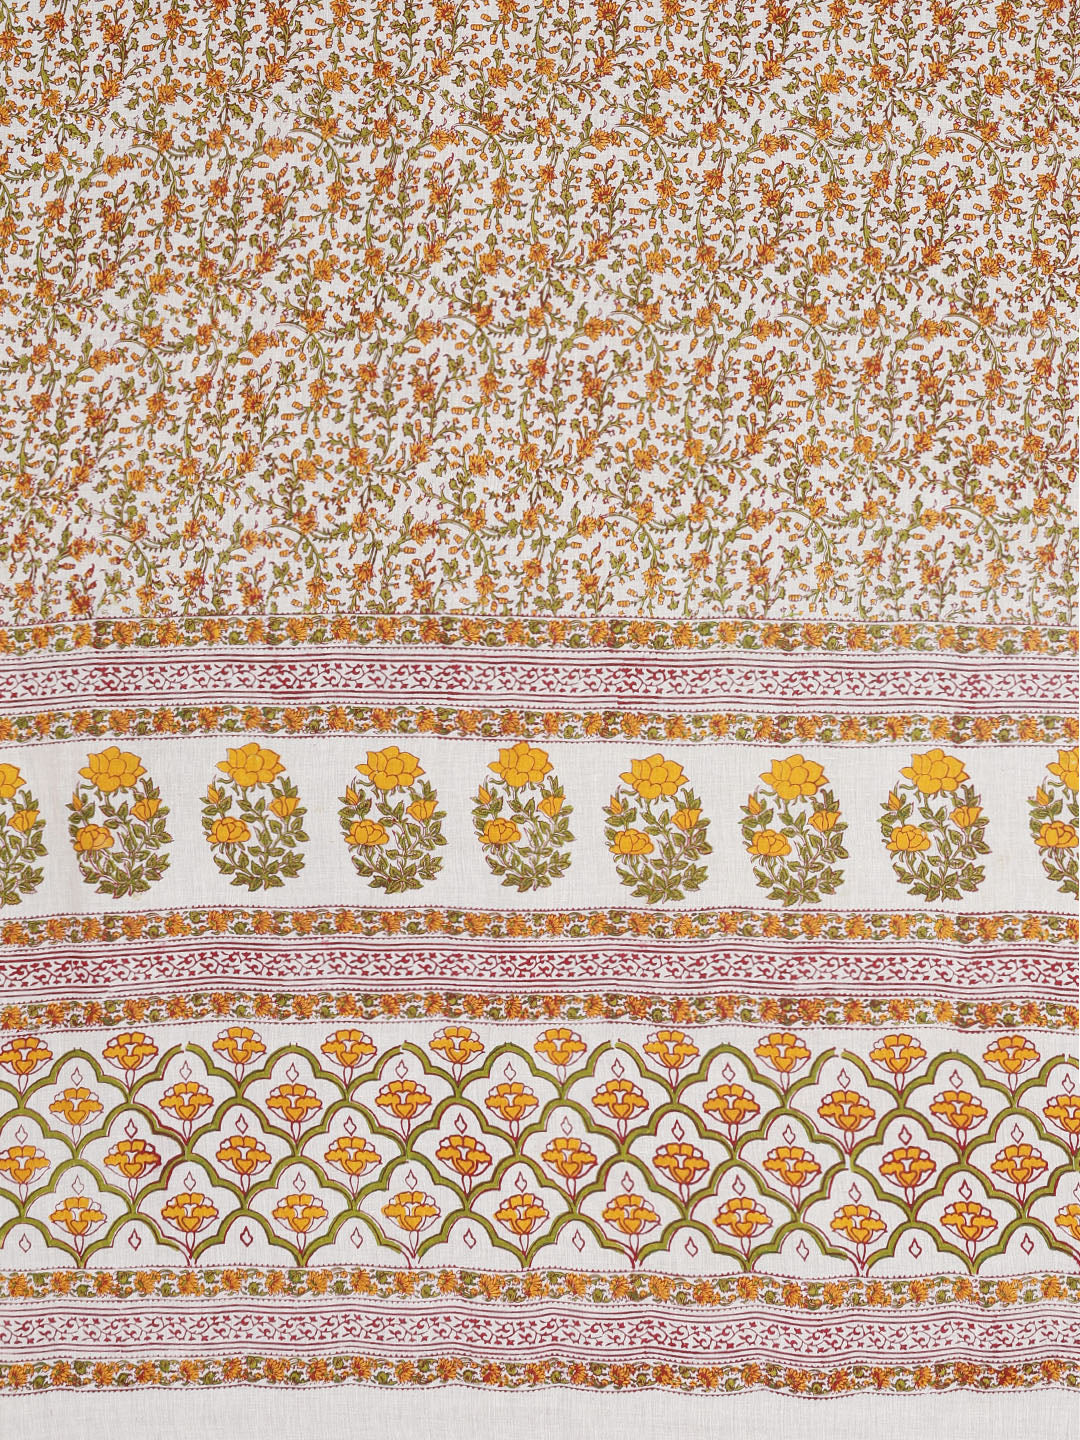 Beige & Yellow Hand Block Print Handcrafted Cotton Saree-Saree-Kalakari India-BAPASA0091-Cotton, Dabu, Geographical Indication, Hand Blocks, Hand Crafted, Heritage Prints, Sarees, Sustainable Fabrics-[Linen,Ethnic,wear,Fashionista,Handloom,Handicraft,Indigo,blockprint,block,print,Cotton,Chanderi,Blue, latest,classy,party,bollywood,trendy,summer,style,traditional,formal,elegant,unique,style,hand,block,print, dabu,booti,gift,present,glamorous,affordable,collectible,Sari,Saree,printed, holi, Diwali